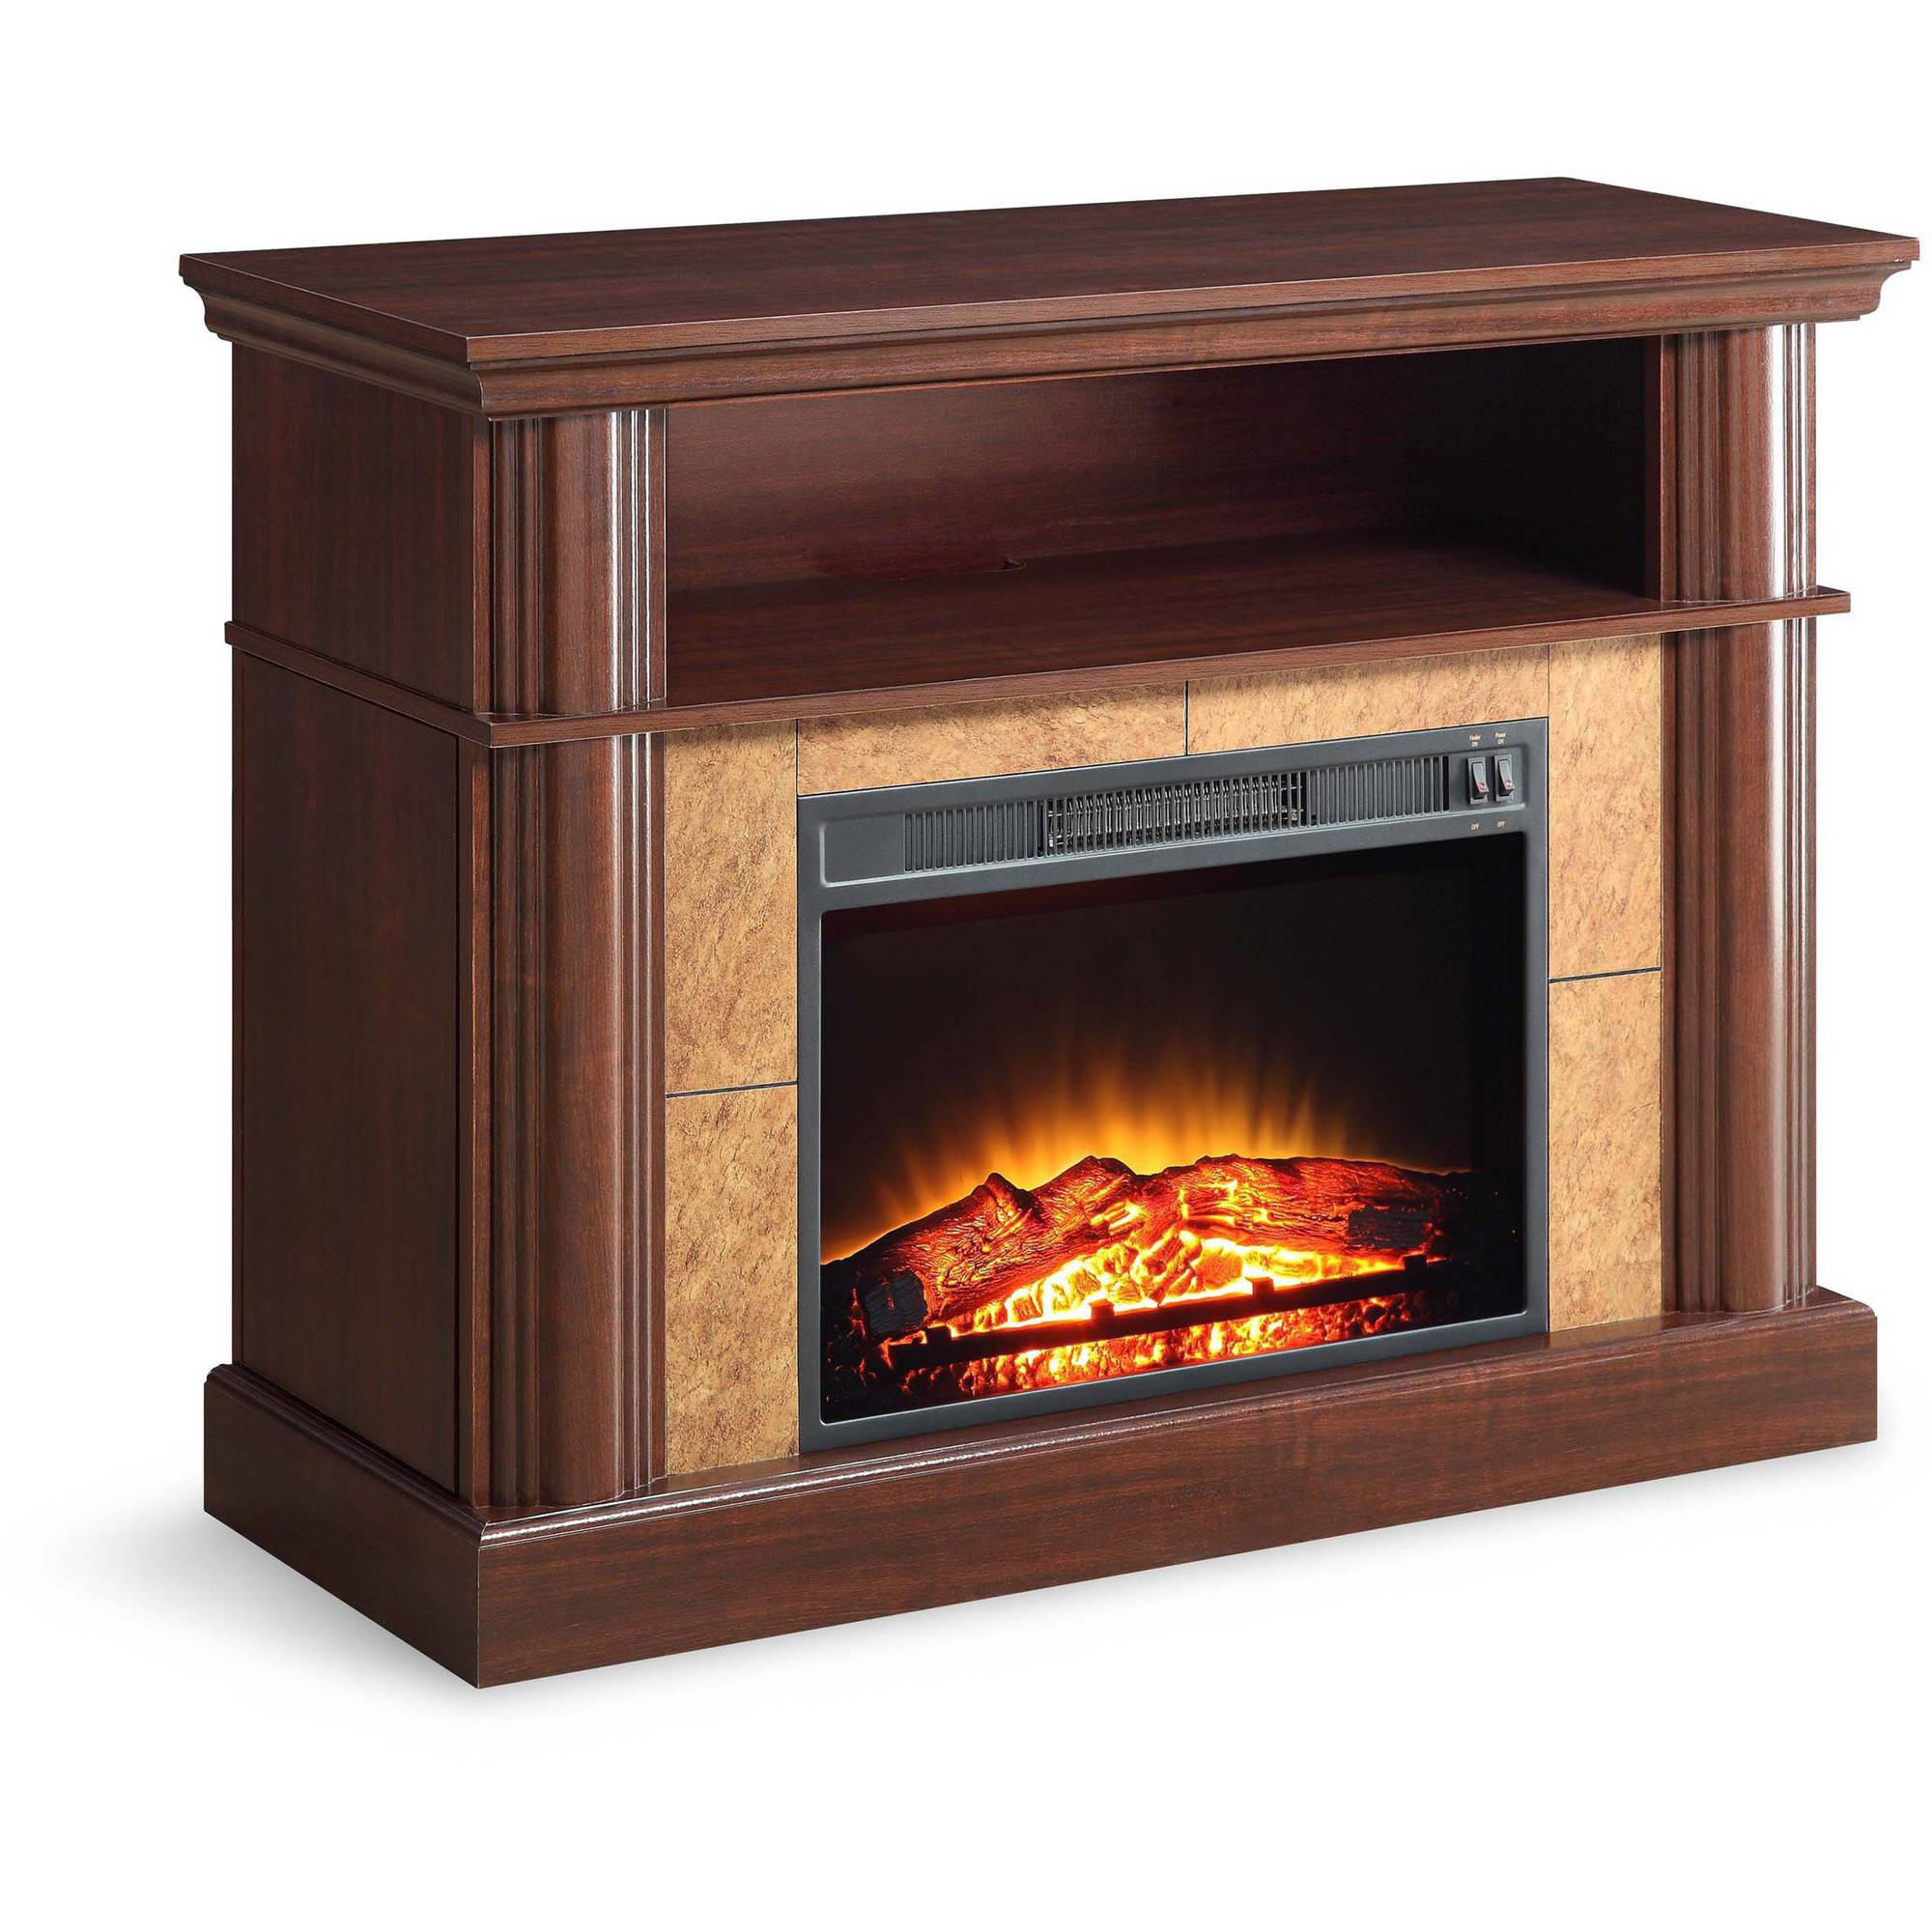 Better homes and fireplace media cherry gardens for tvs up to 54 for Better homes and gardens fireplace tv stand